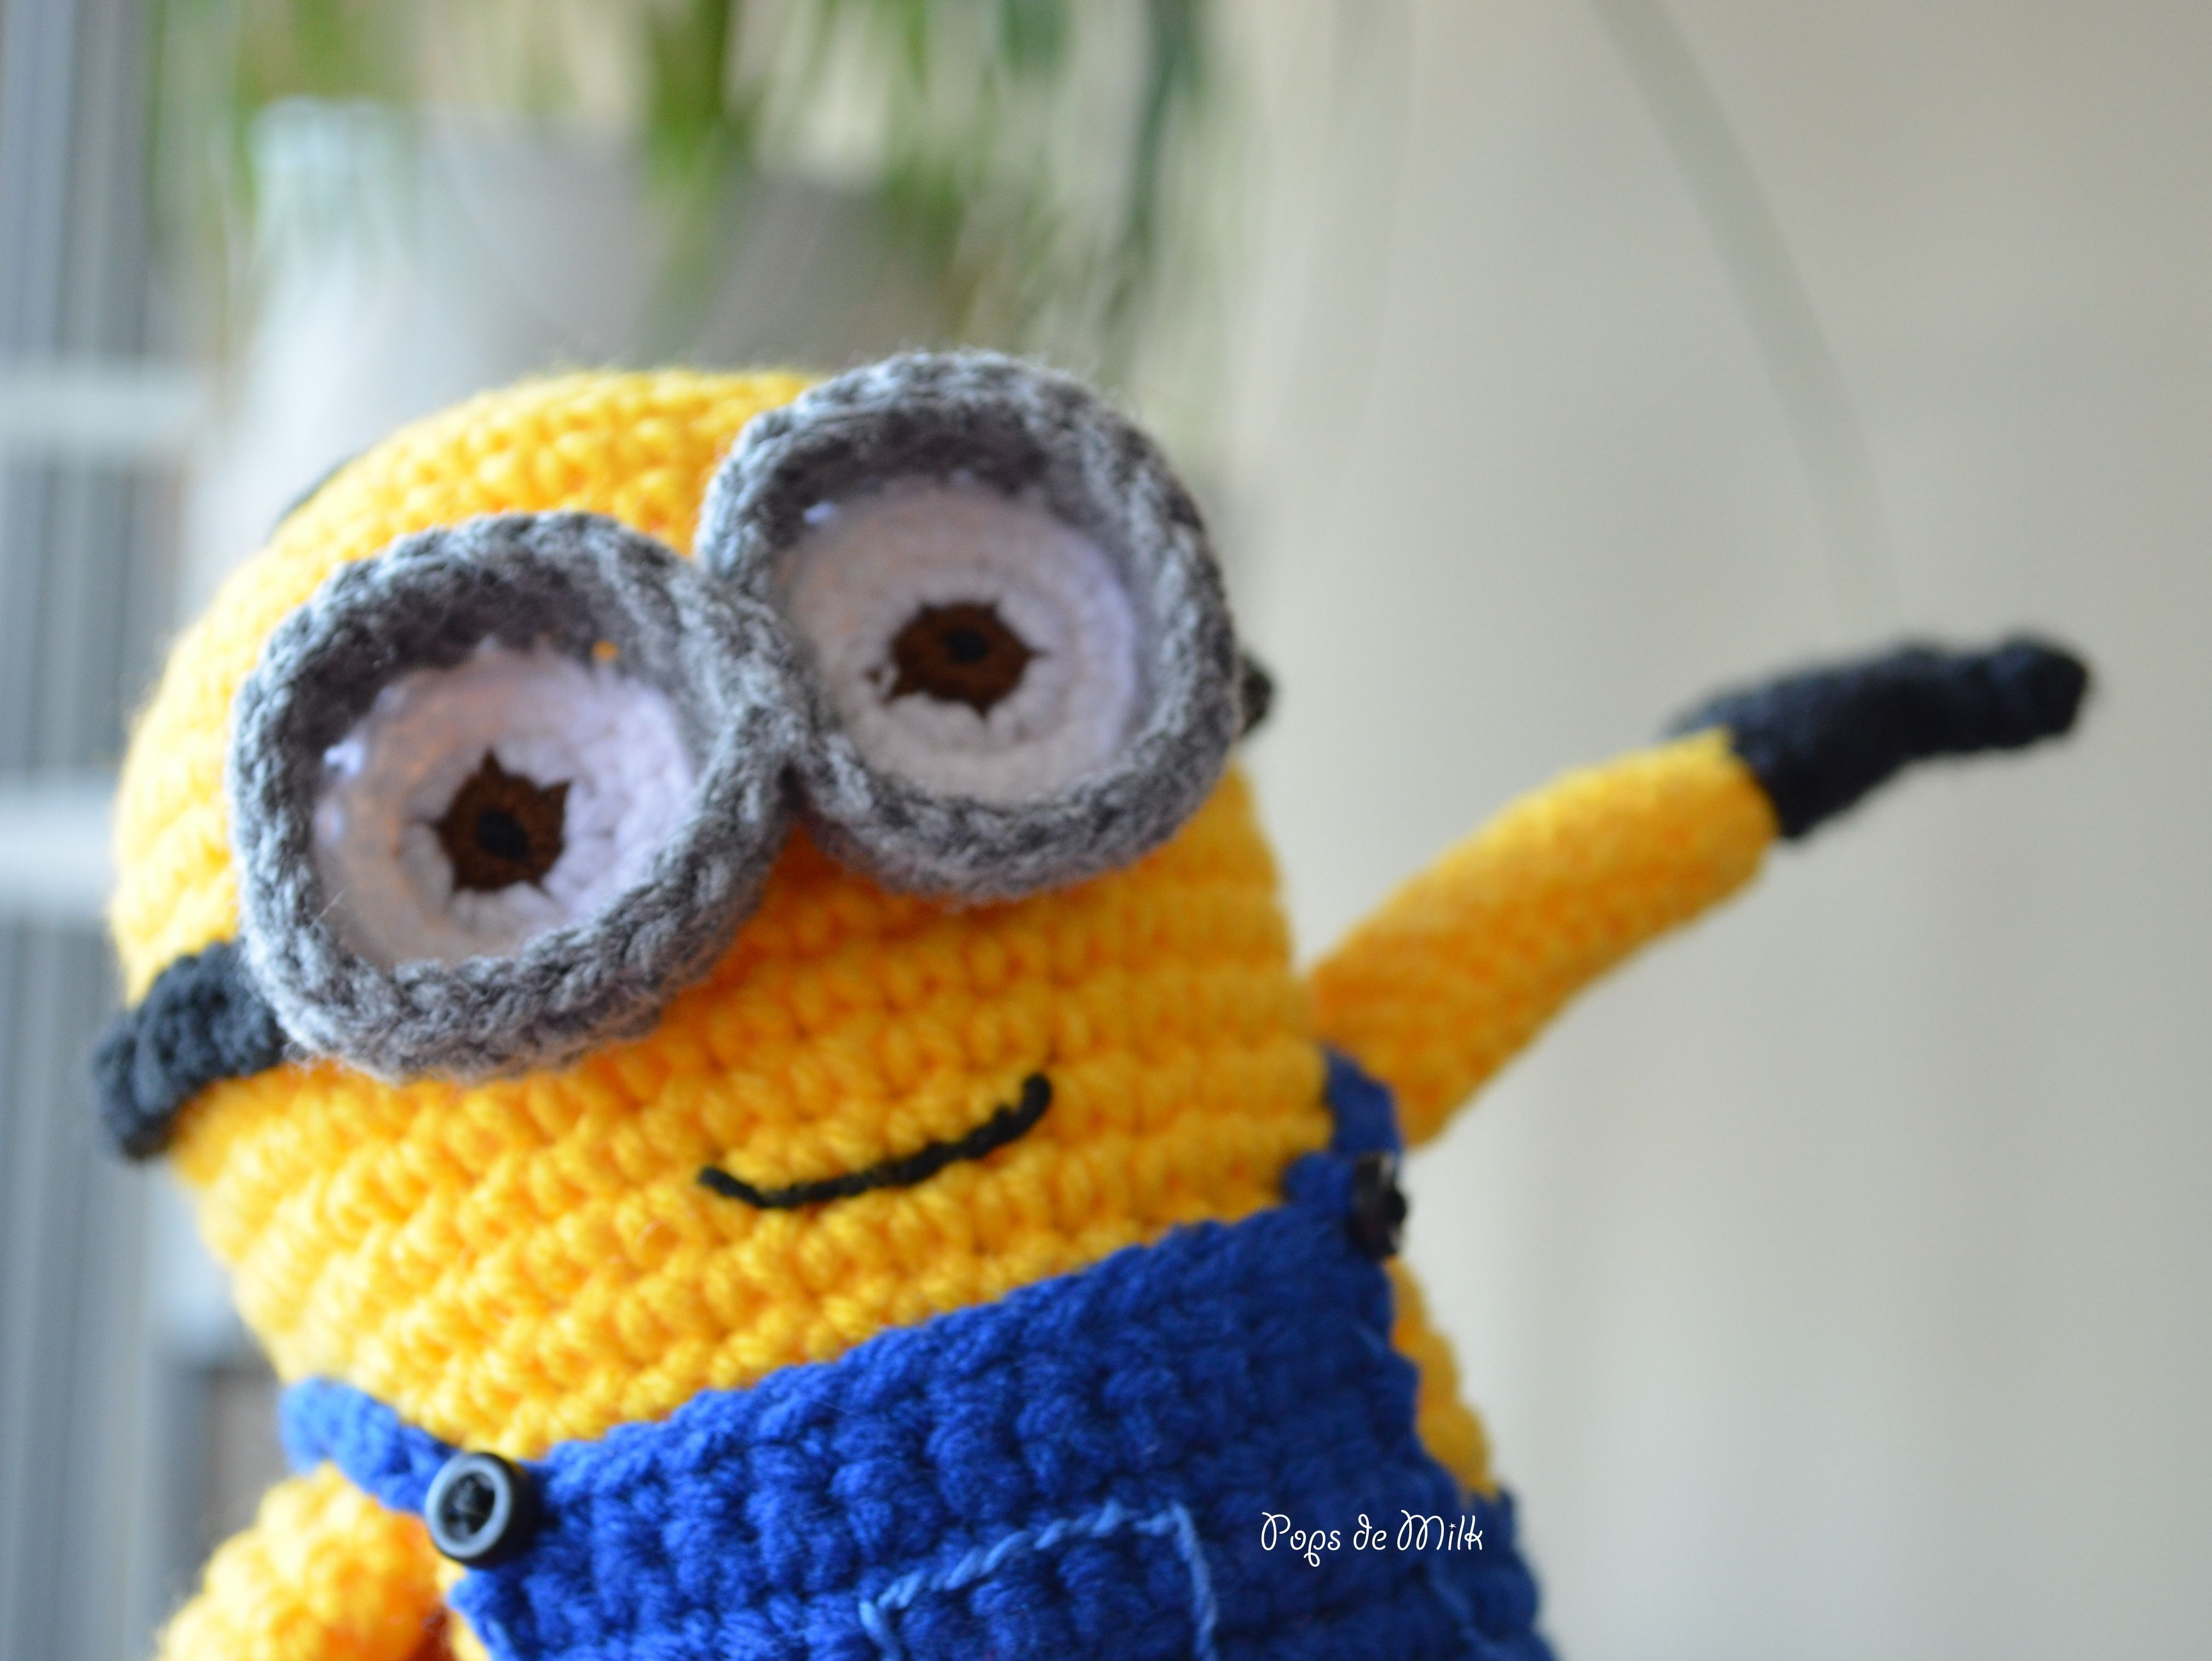 Dave the Minion Crochet Pattern #minioncrochetpatterns Dave the Minion in air - Pops de Milk #minioncrochetpatterns Dave the Minion Crochet Pattern #minioncrochetpatterns Dave the Minion in air - Pops de Milk #minioncrochetpatterns